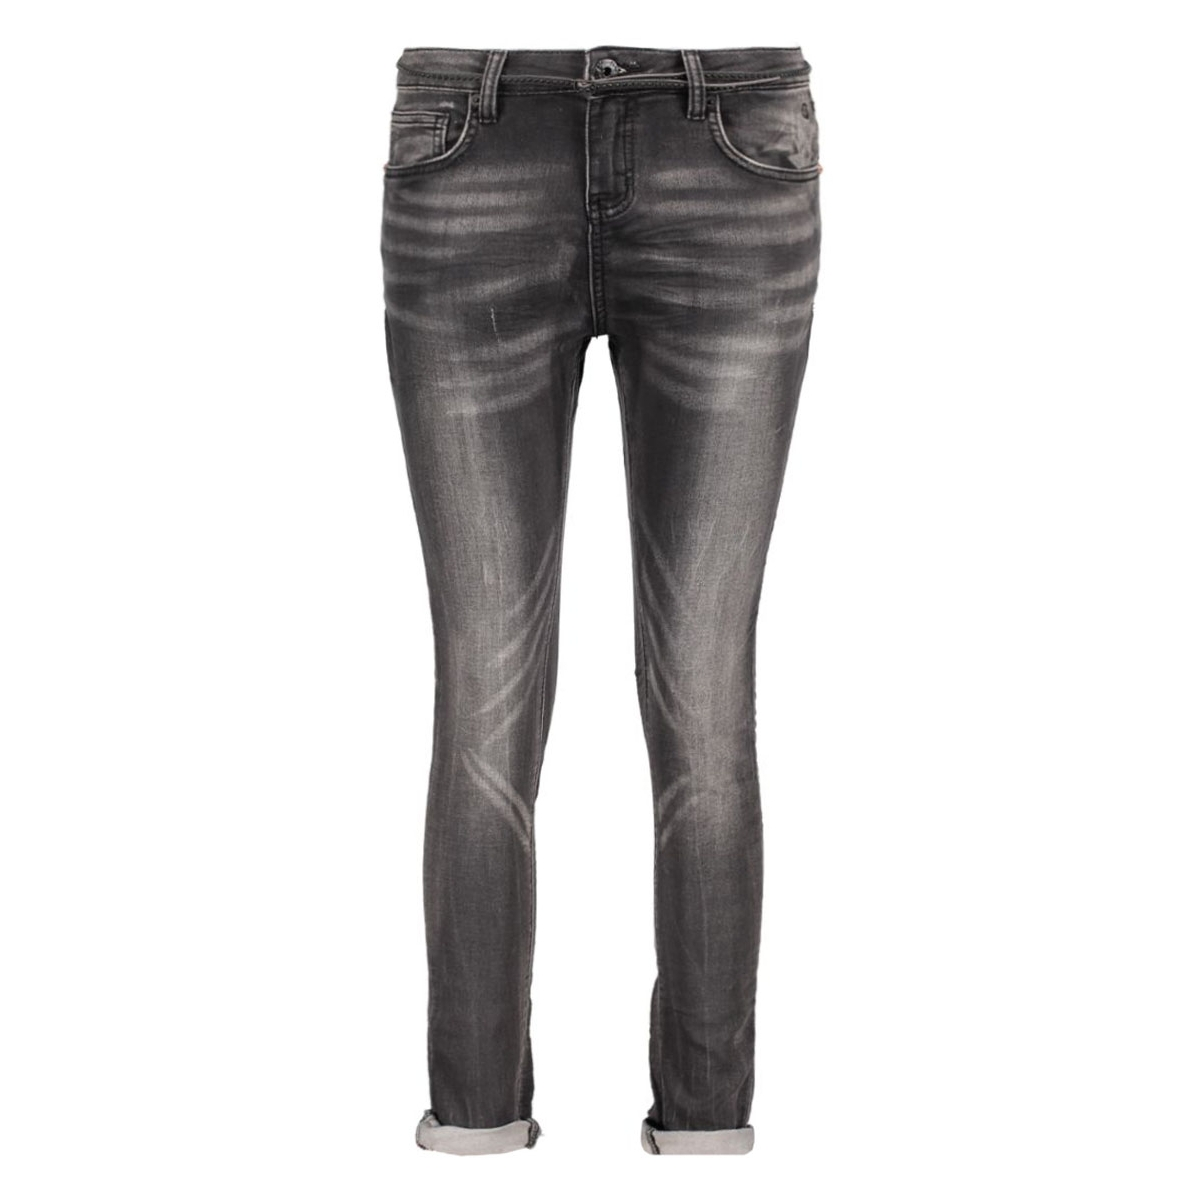 w16.10.4863 cooper jogg jeans circle of trust jeans urban grey